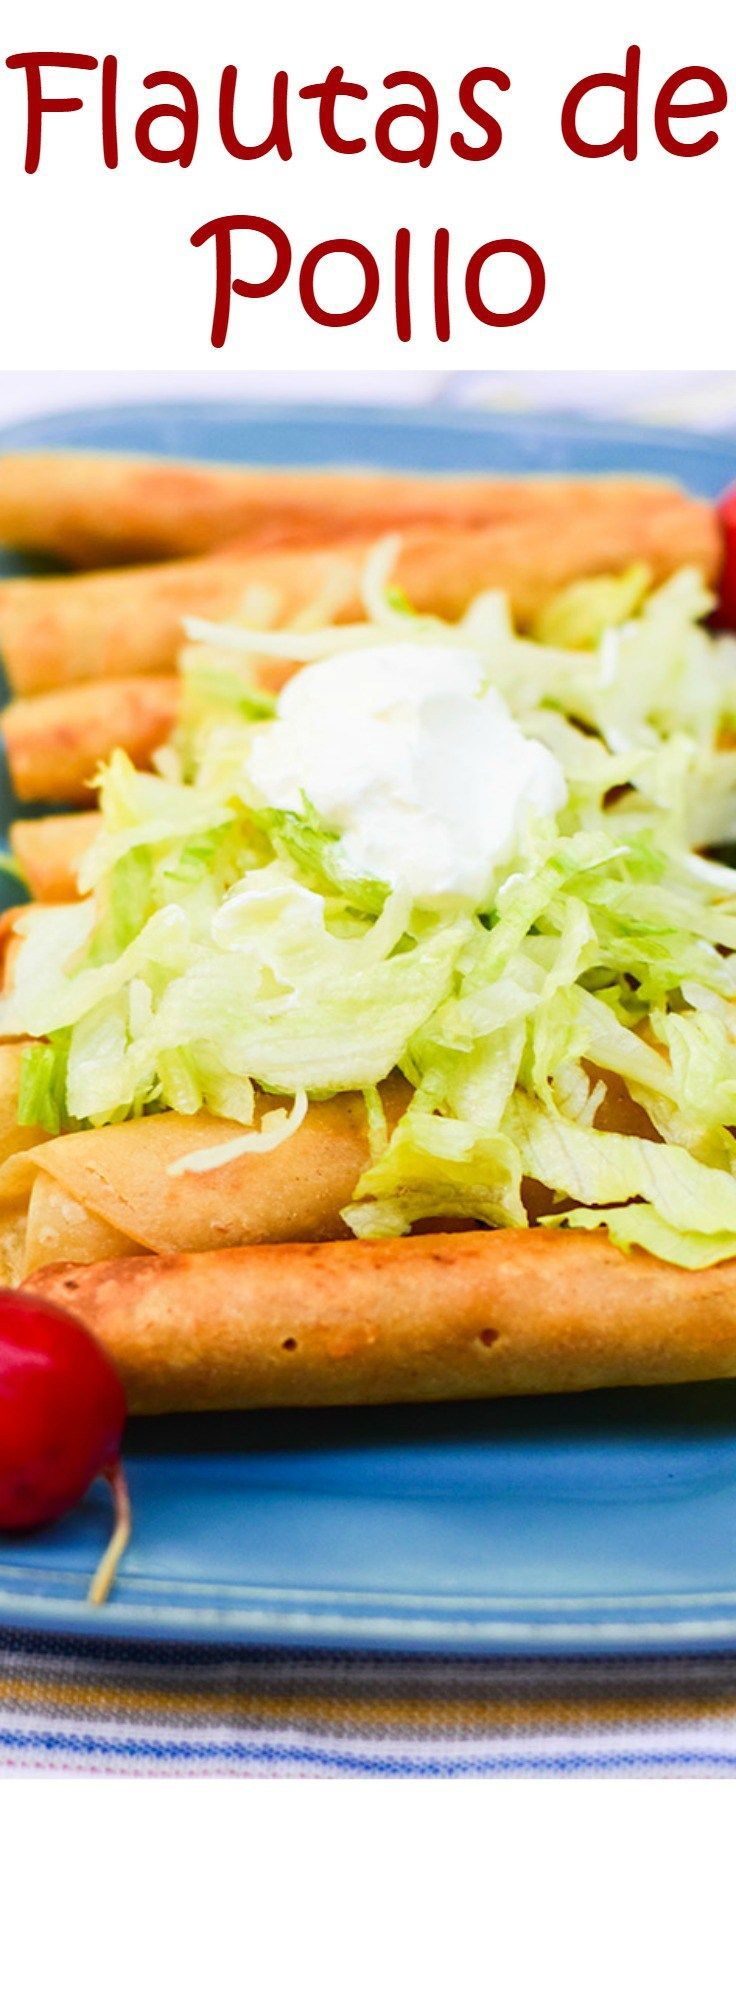 "Flautas are tortillas filled with a flavorful chicken mixture and fried into crispy ""flutes"". Try them!"